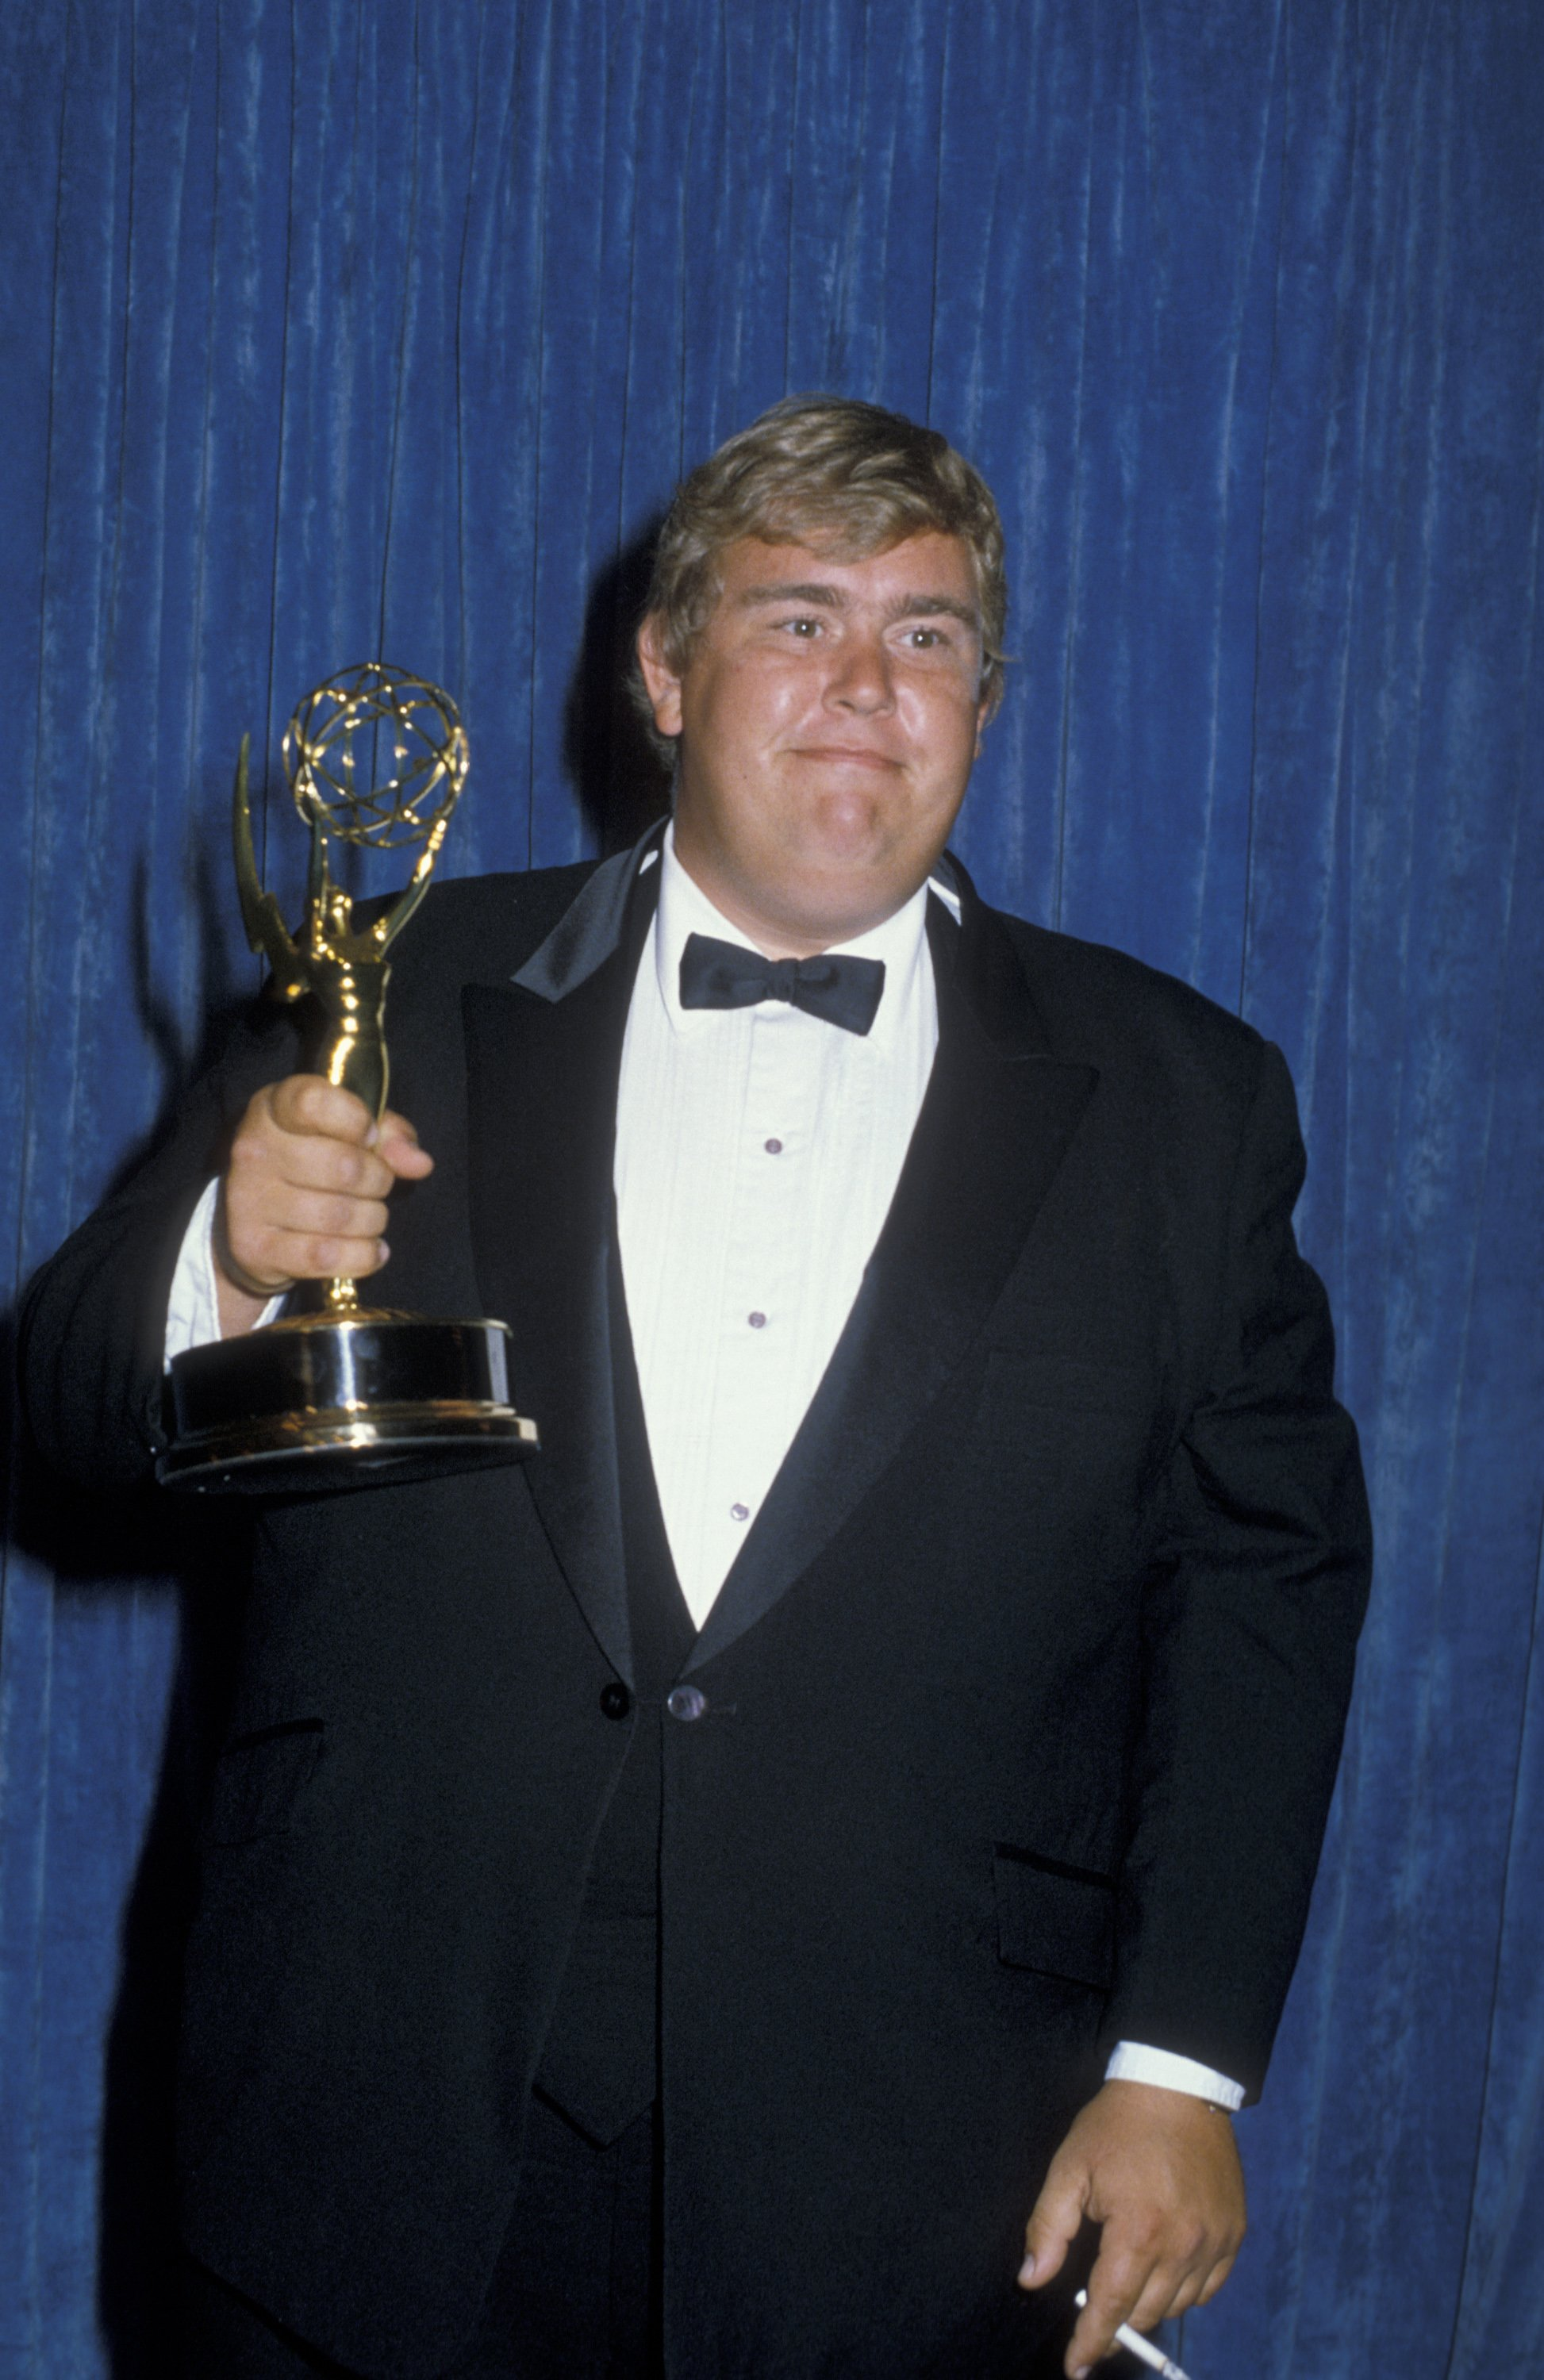 John Candy attends 35th Annual Primetime Emmy Awards on September 25, 1983 at the Pasadena Civic Auditorium in Pasadena, California | Photo: Getty Images